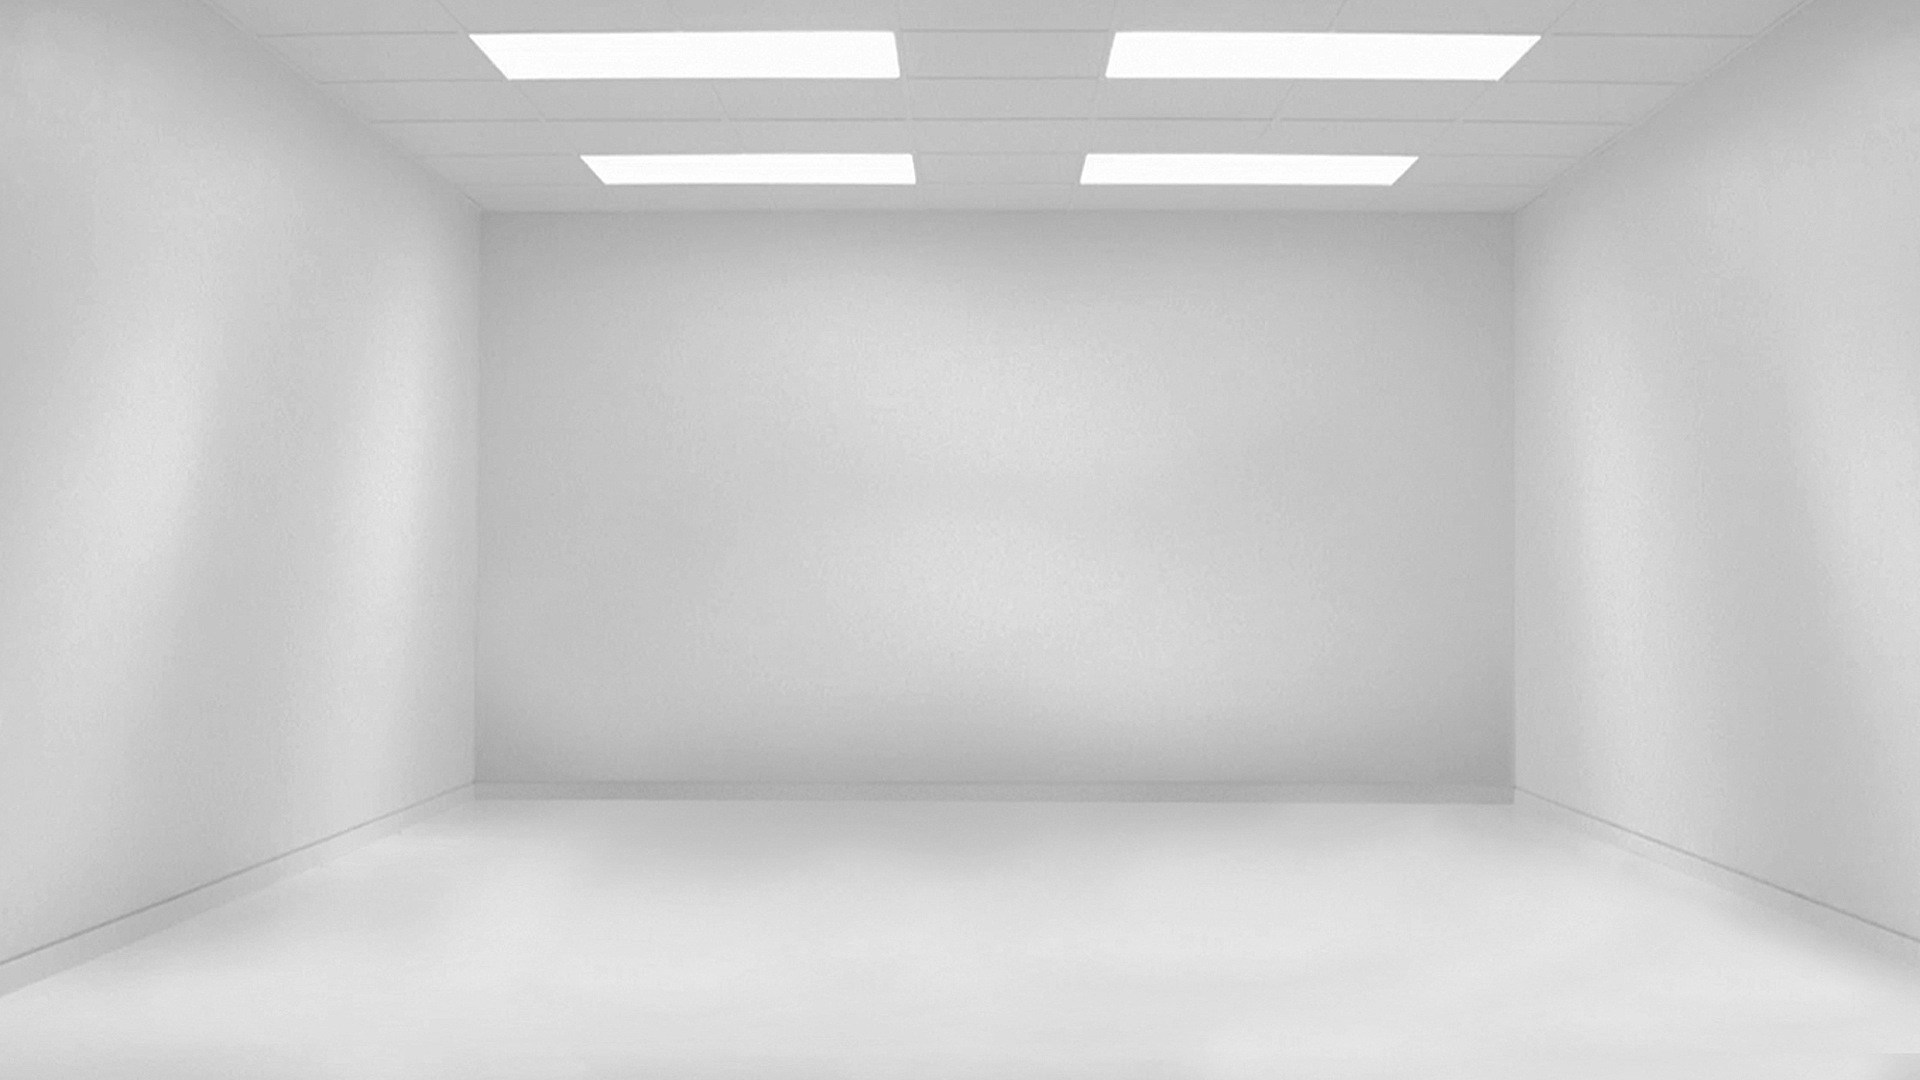 White white room wallpaper 1920x1080 75327 wallpaperup for Room with no doors or windows